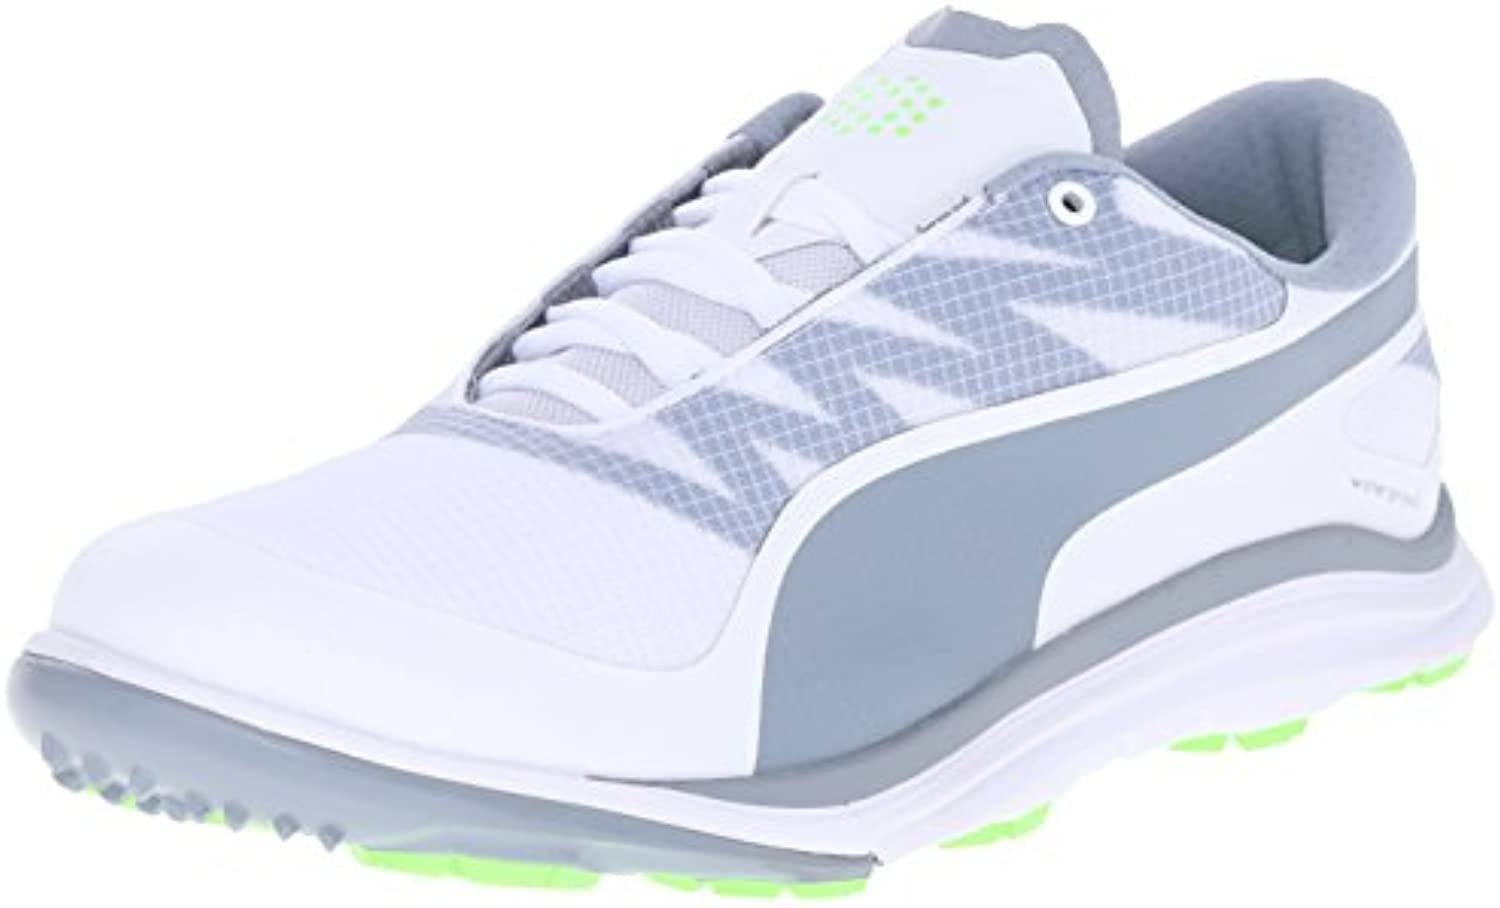 PUMA Men's BioDrive Golf Shoe  White/Tradewinds/Grey  8.5 M US